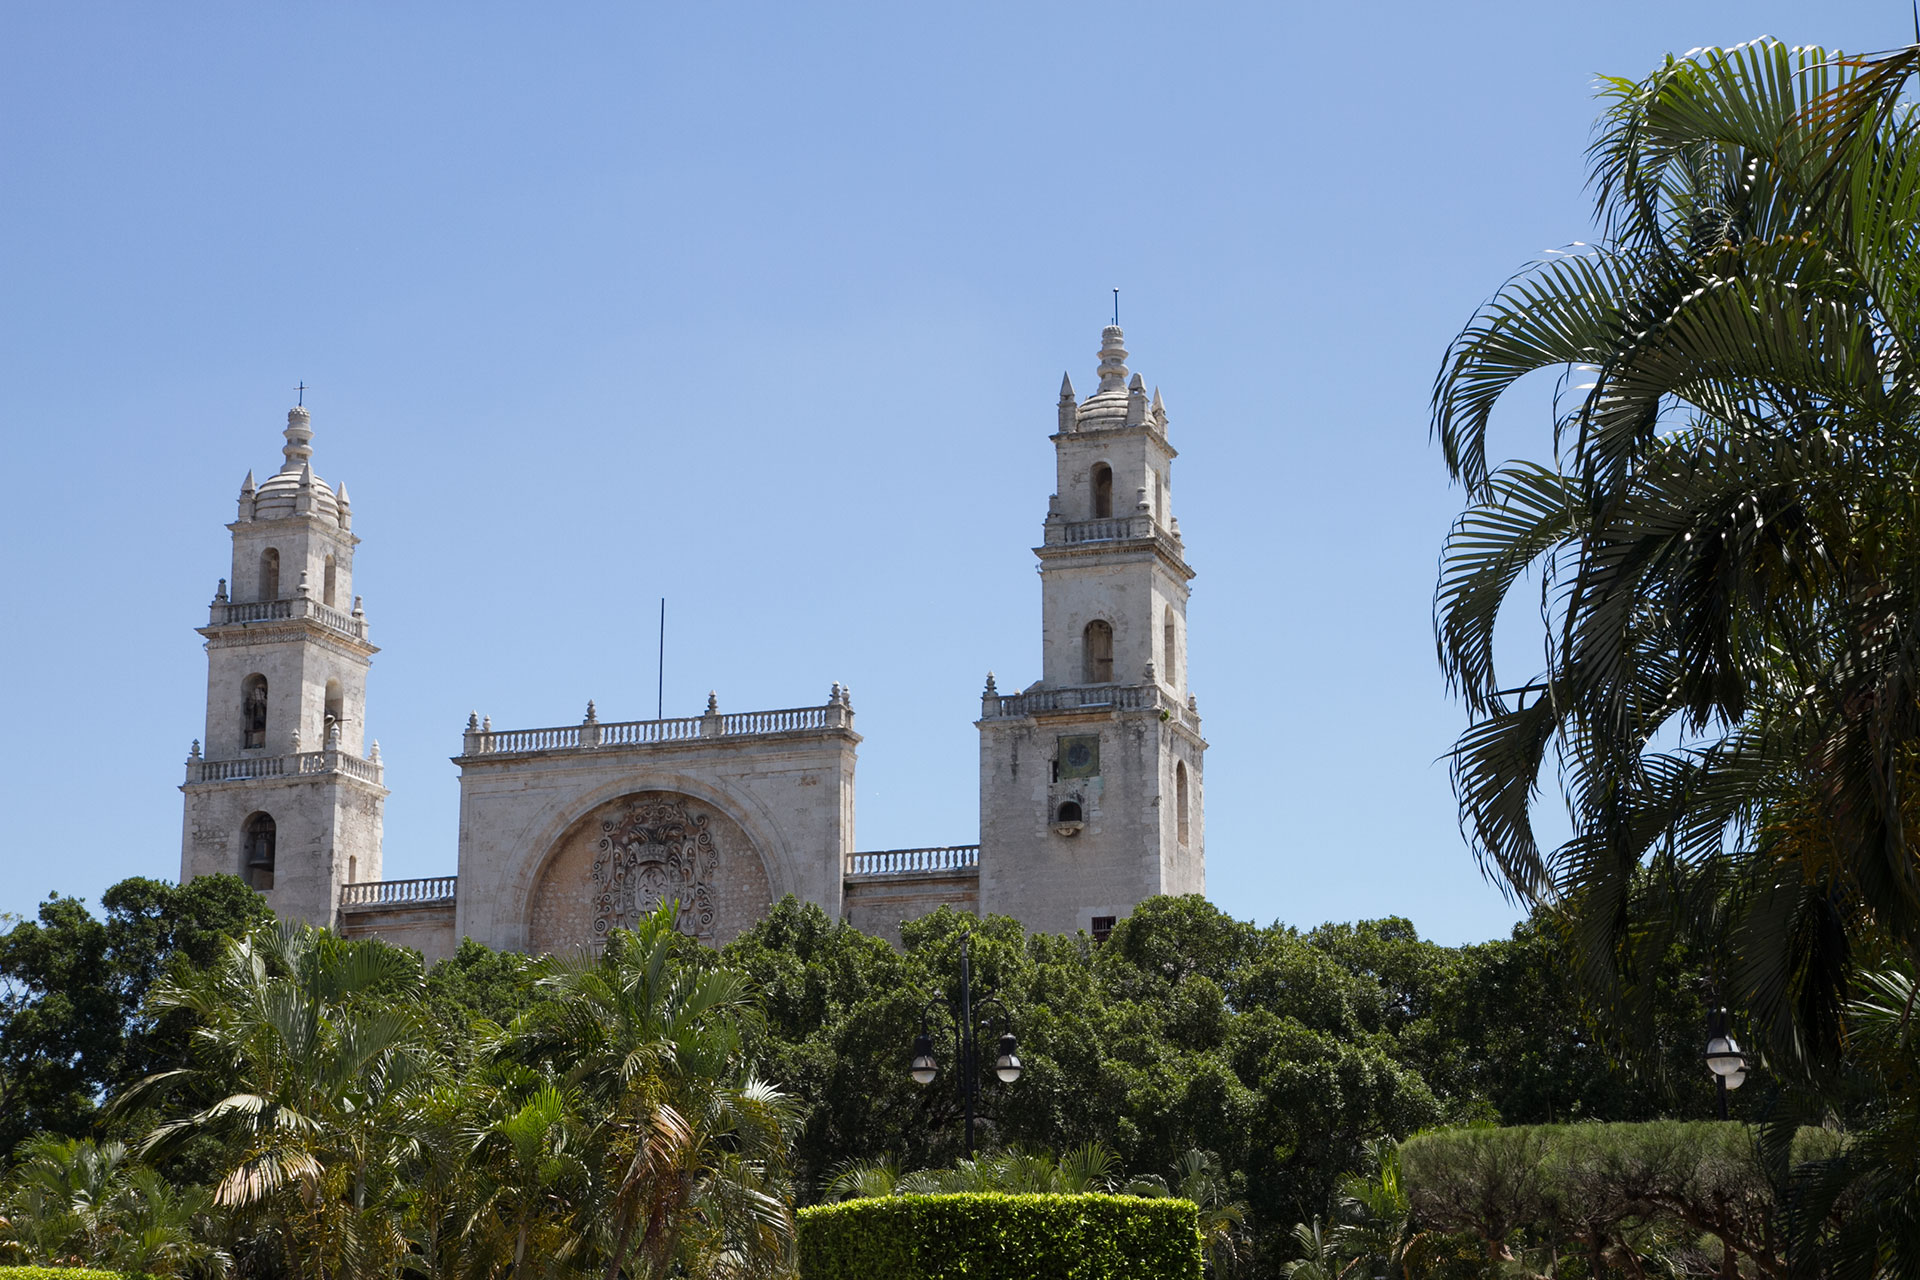 Merida's Cathedral from the Plaza